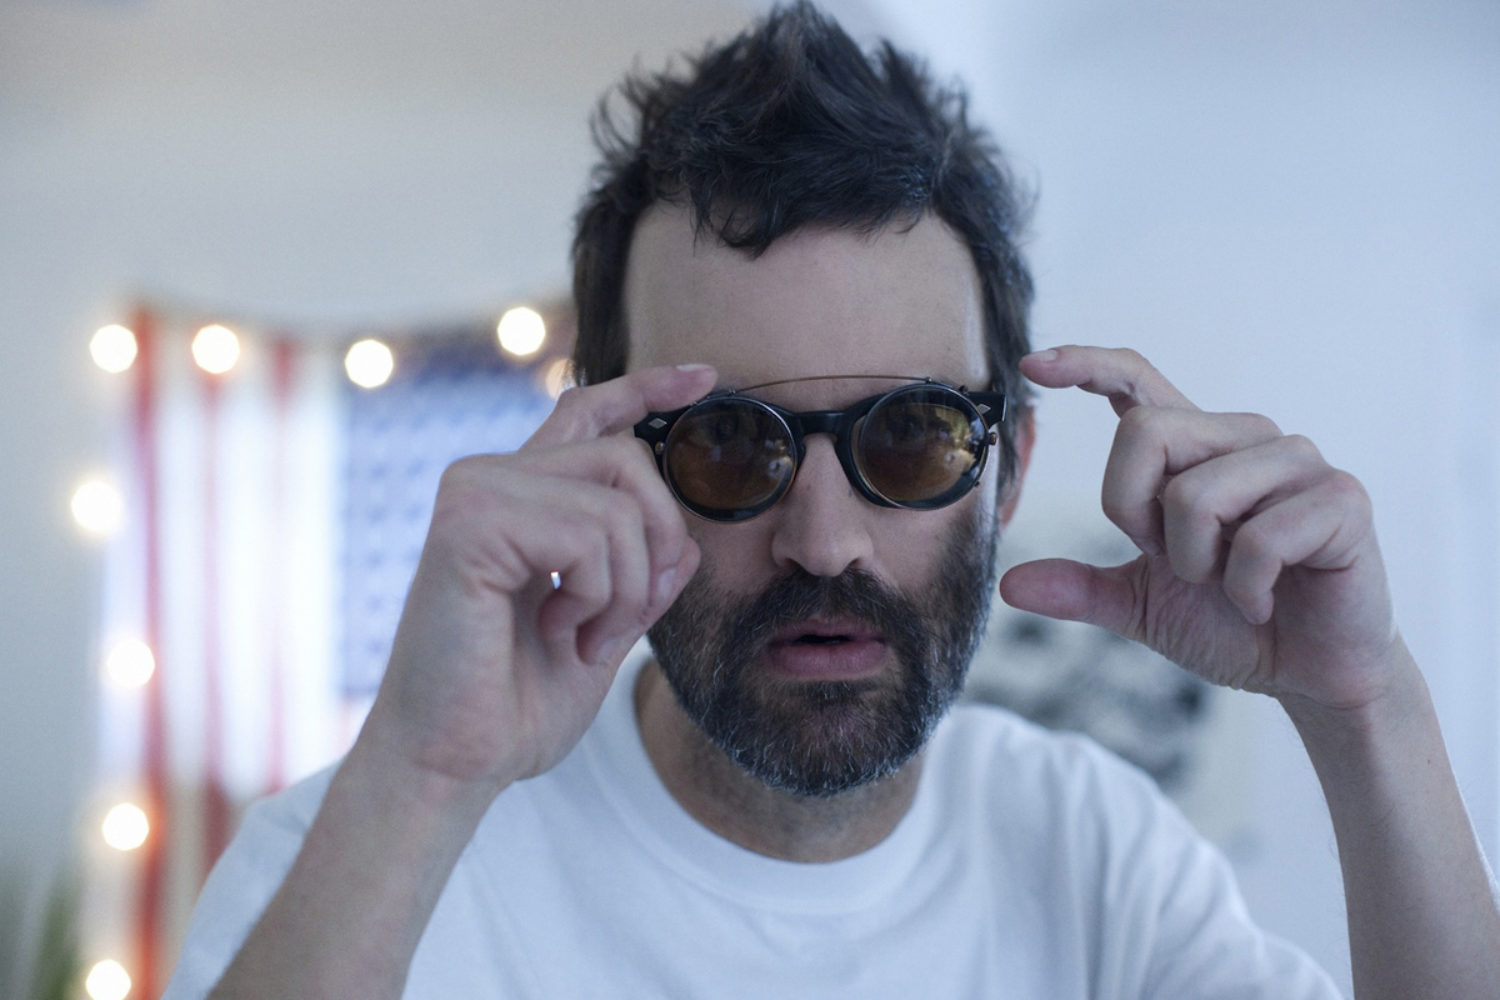 Eels add Manchester and Glasgow shows to 2019 plans